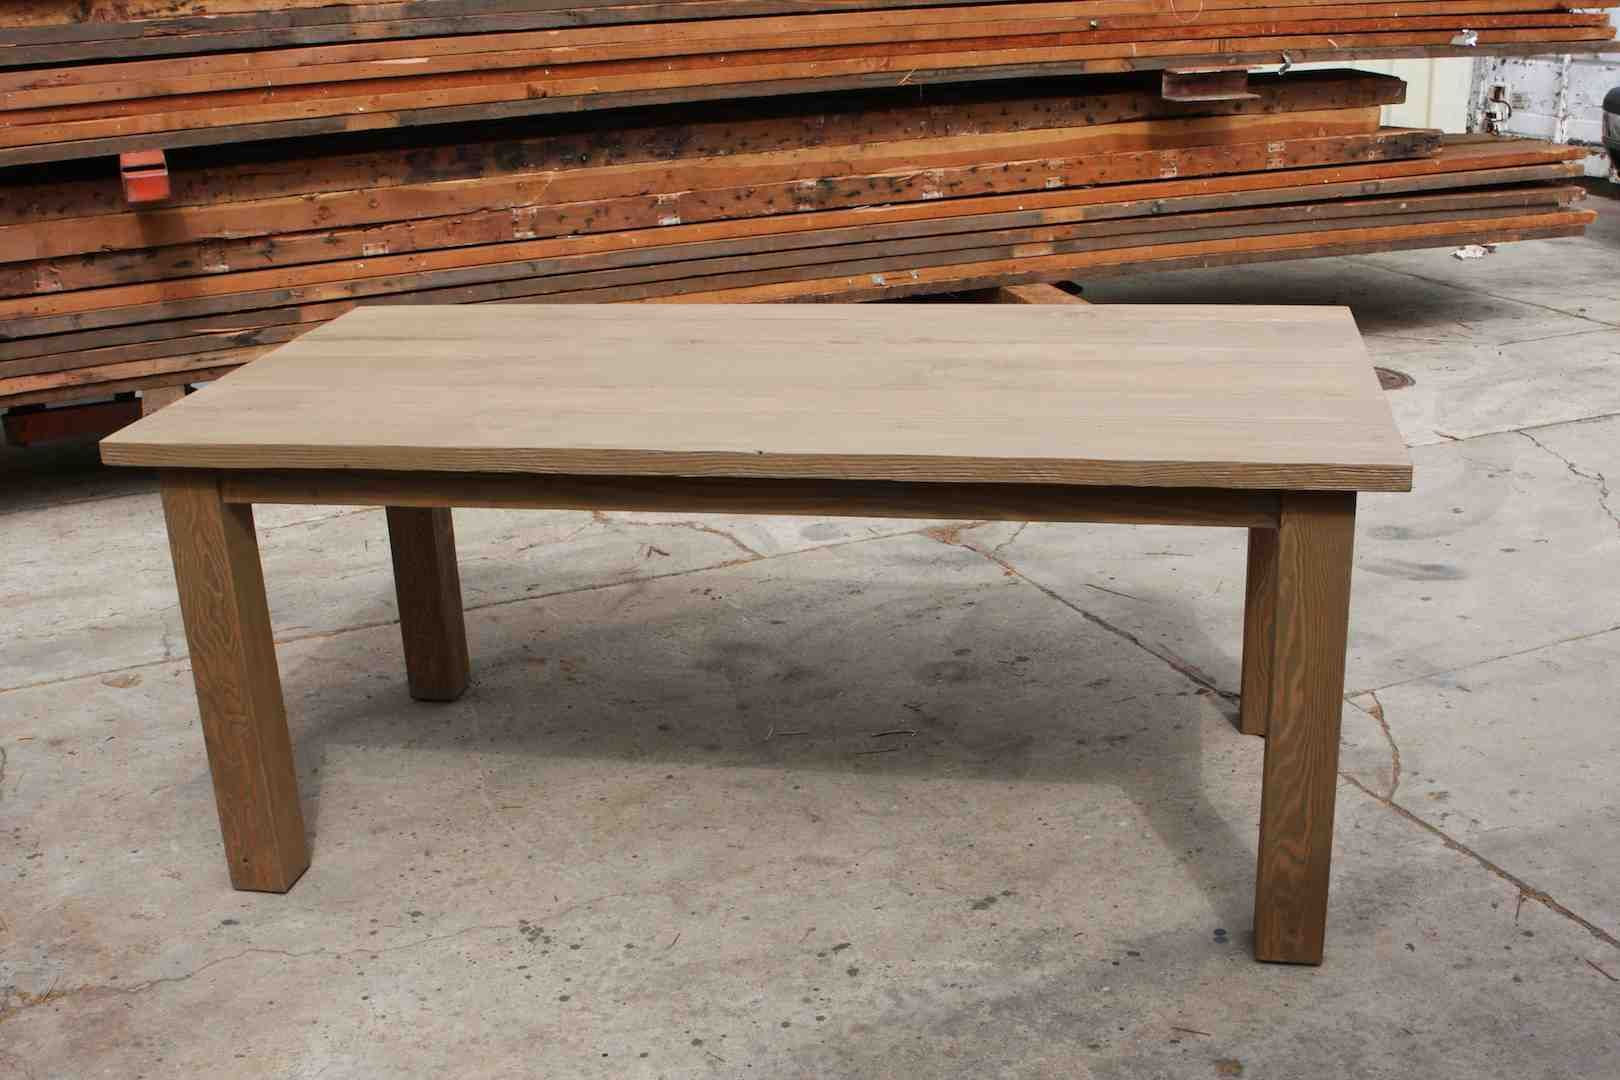 Photo : Used Wood Tables Images